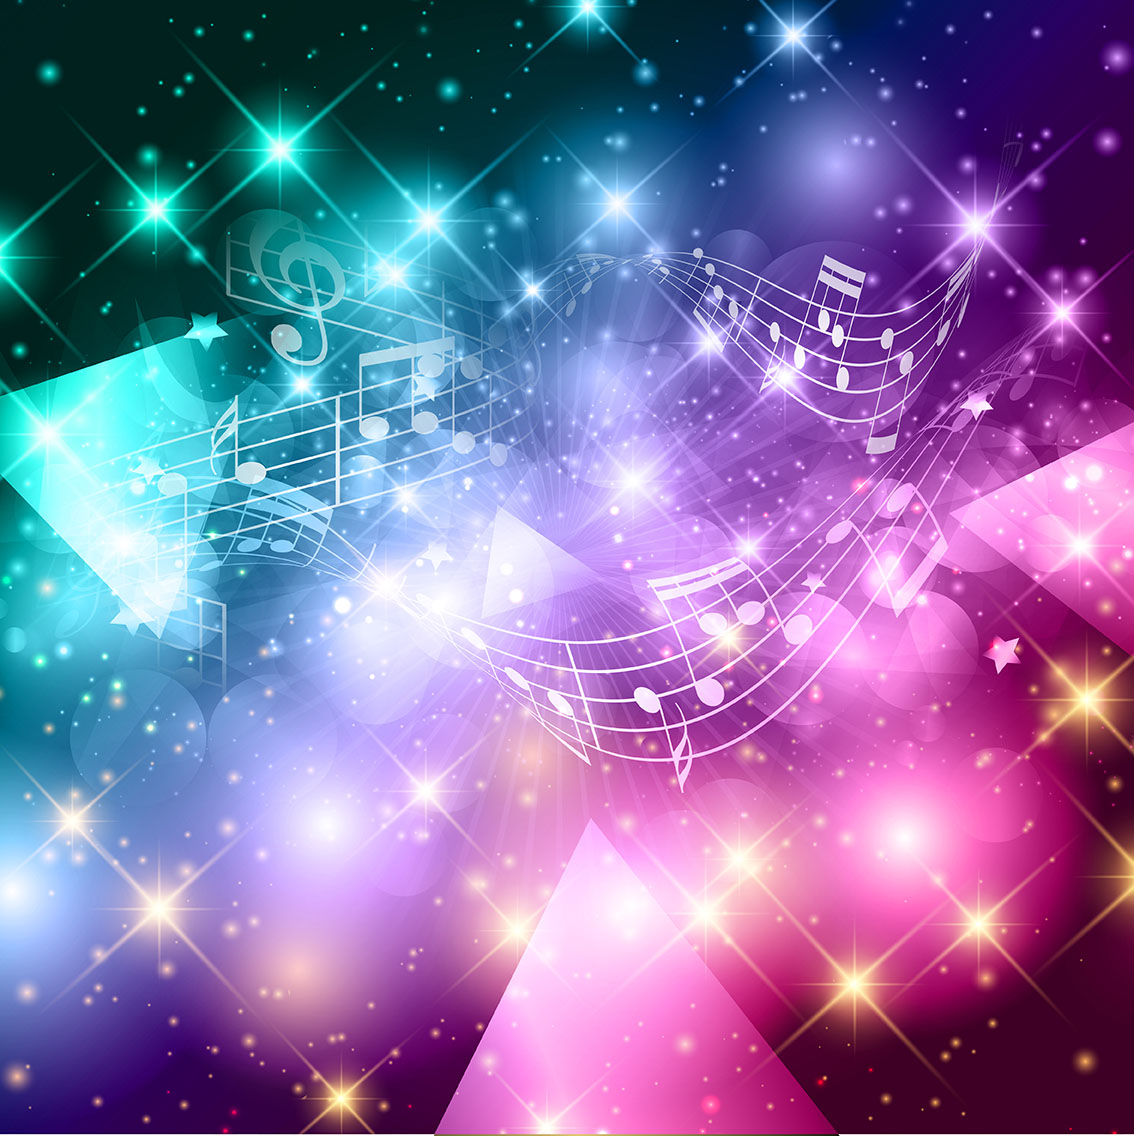 Abstract music notes background 222465 - Download Free ...